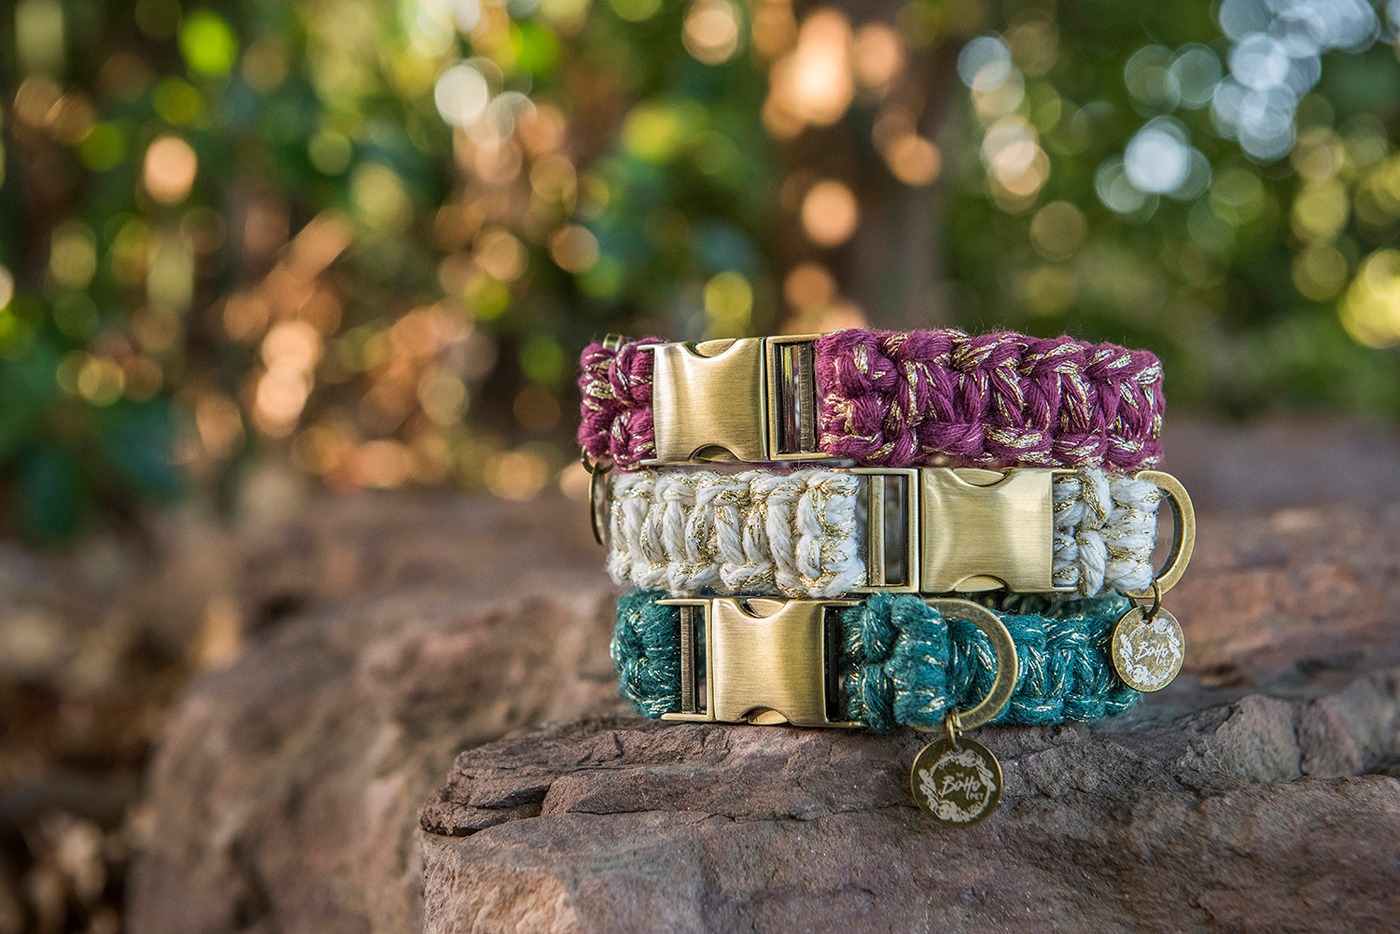 A stack of The Boho Pet macramé dog collars in three metallic shades